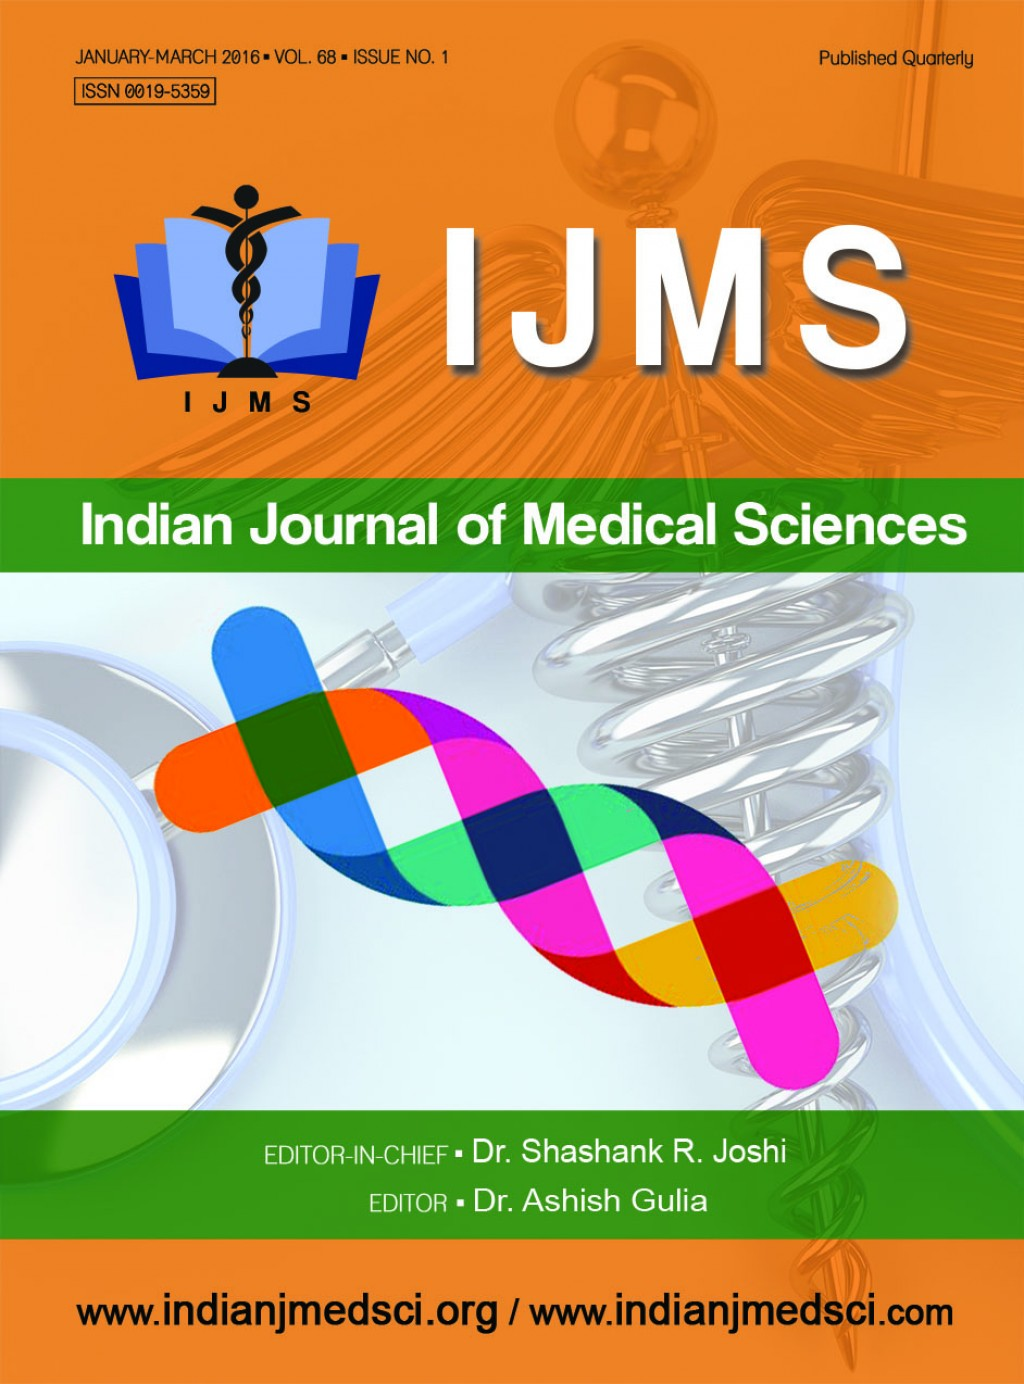 004 Research Paper How To Publish Medical In India Big Cover Breathtaking Large